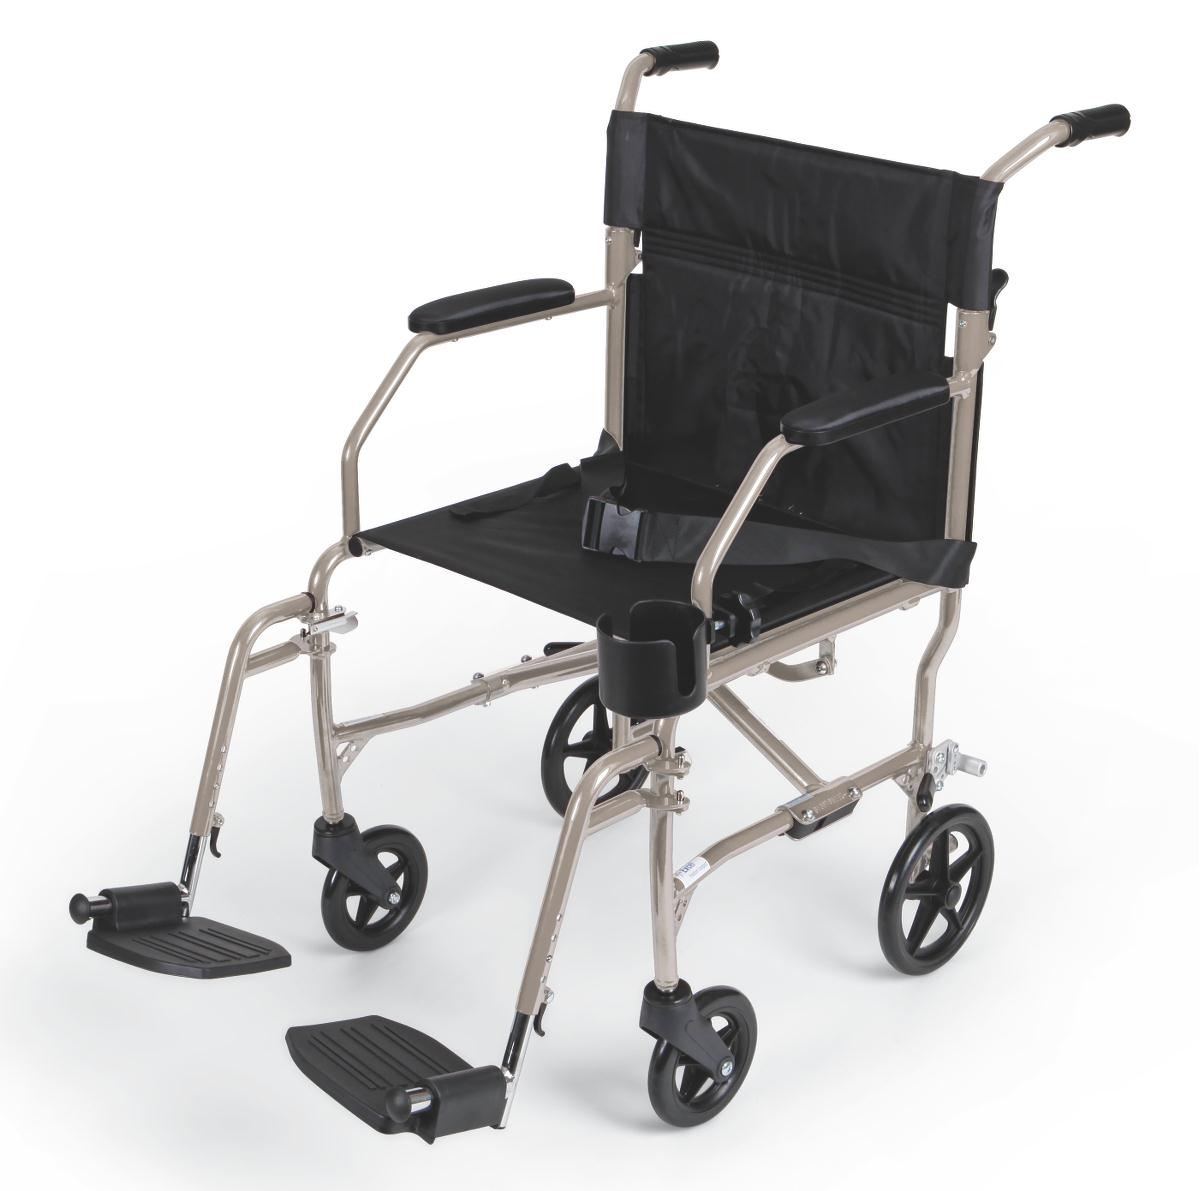 Lightweight Transport Chairs Buy Lightweight Freedom 2 Transport Chair 300 Lbs Cap In